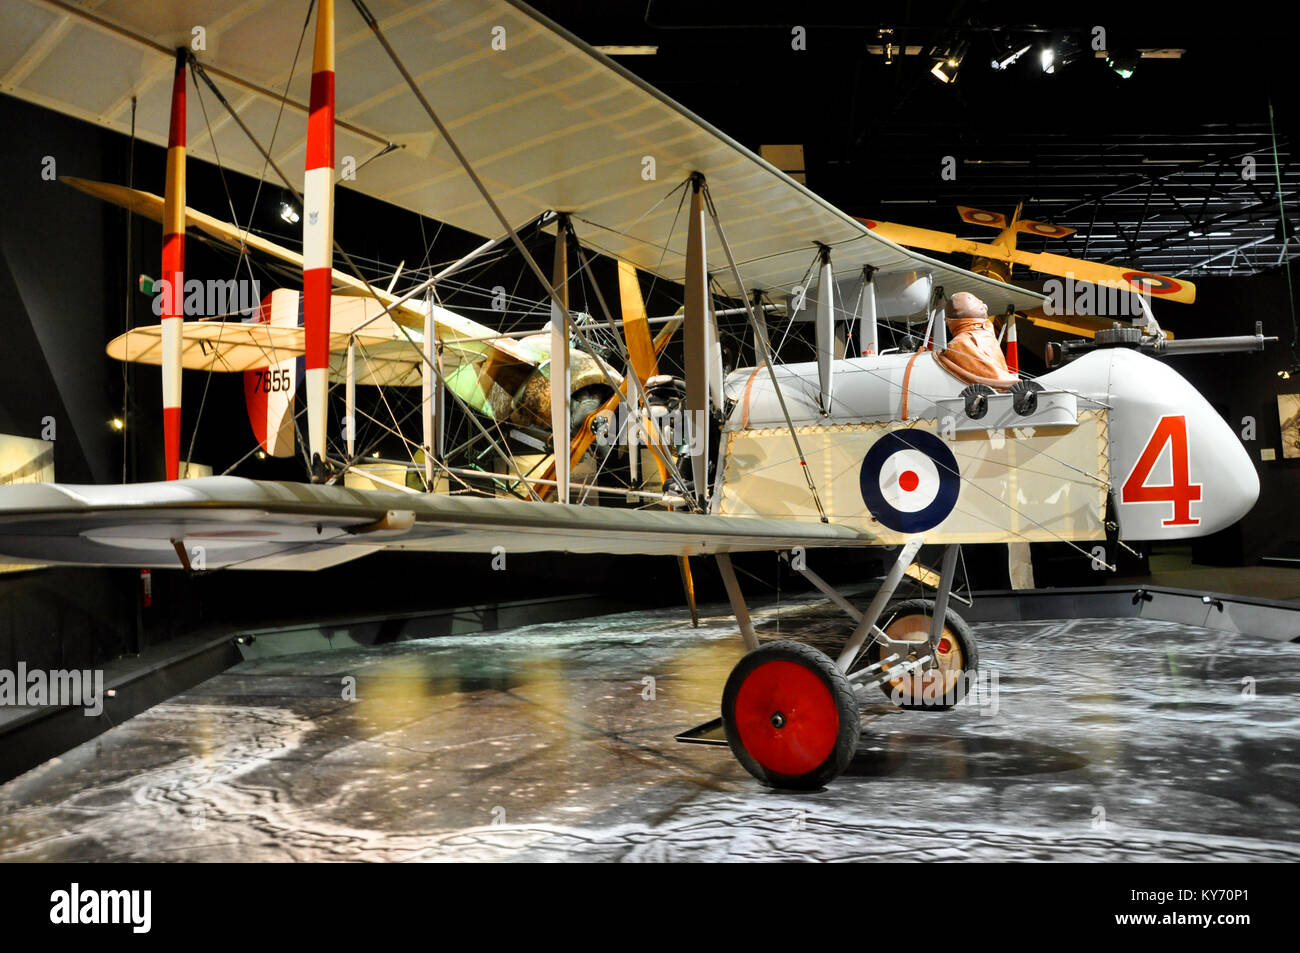 Airco DH2 in a Knights of the Sky diorama in Omaka Aviation Heritage Centre museum, South Island, New Zealand. - Stock Image